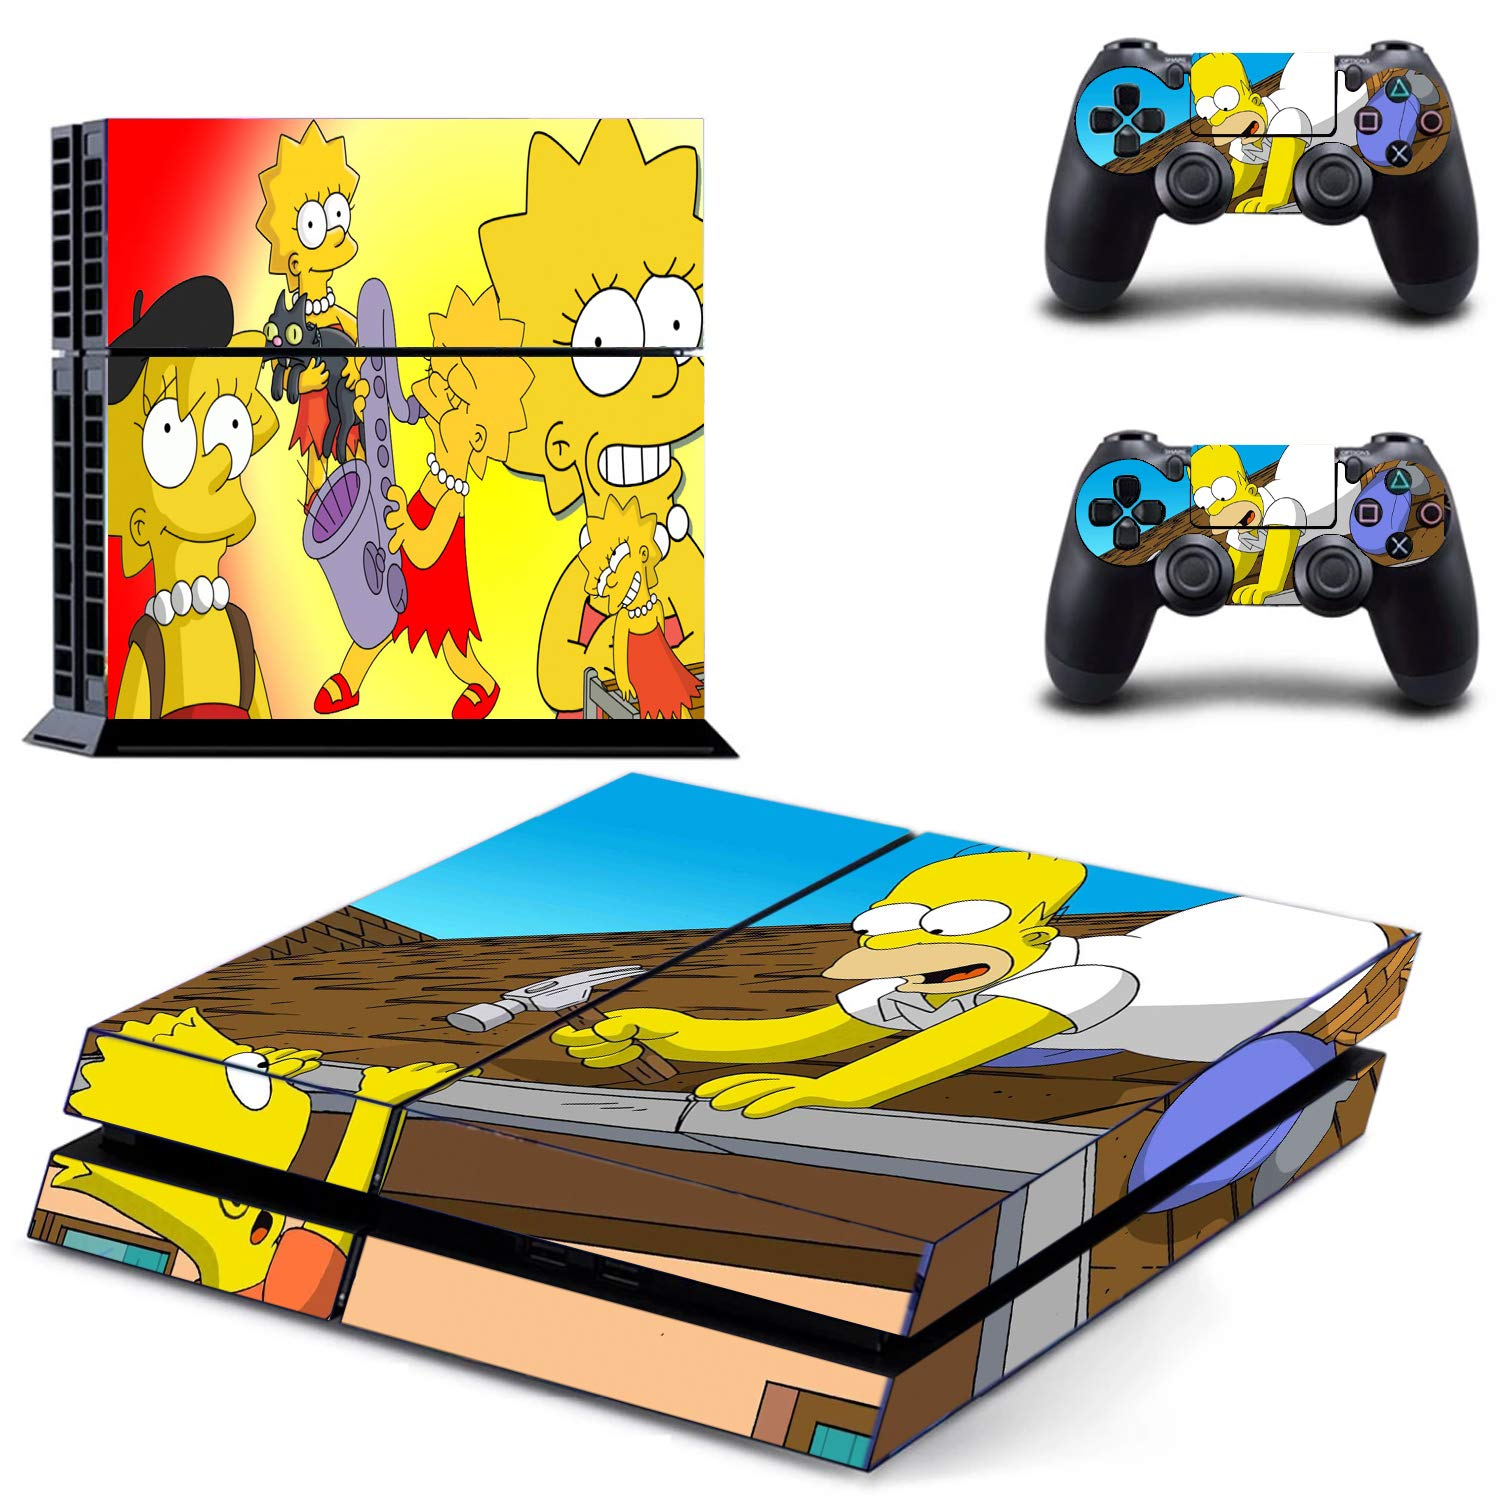 Cartoon Funny Series PS4 Whole Body Vinyl Skin Sticker Decal Cover for Playstation 4 System Console and Controllers by KALINDA MODI_Only I have